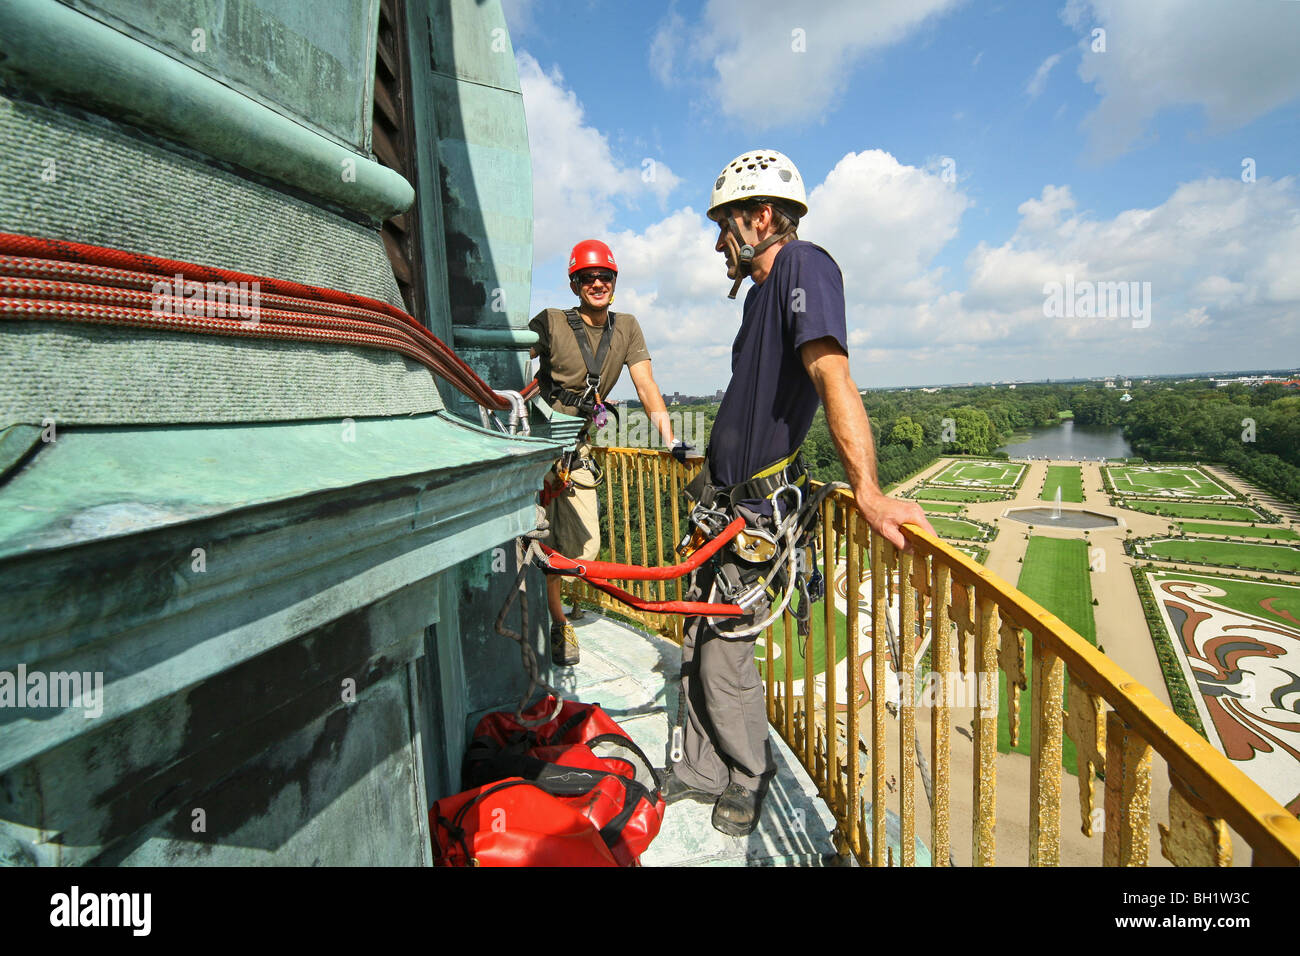 industrial climbers working on dome of Charlottenburg Palace, Berlin, Germany - Stock Image